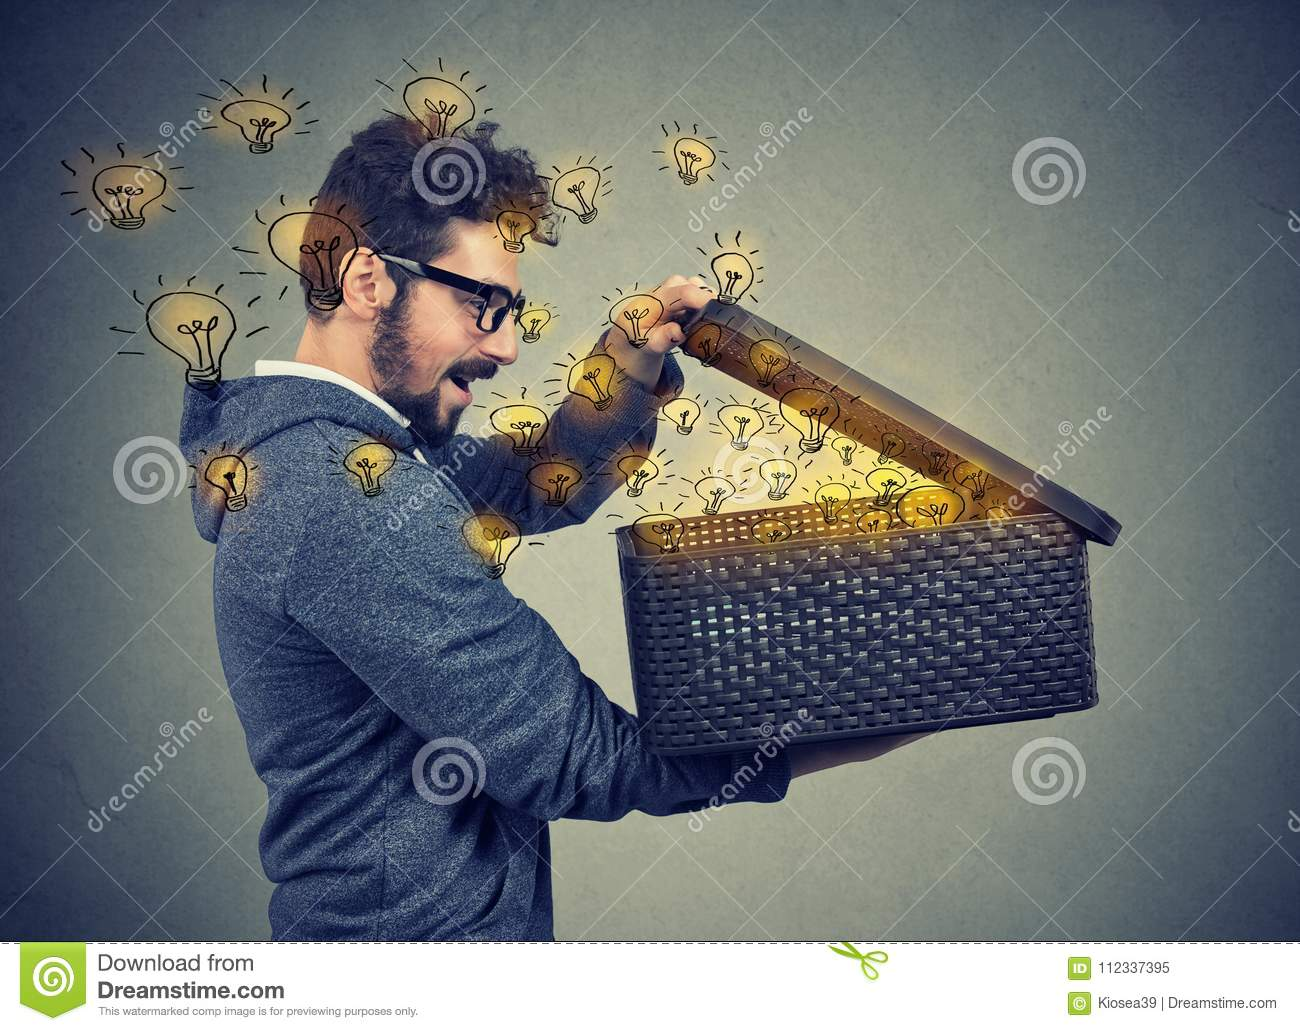 Man opening a box with many bright light bulbs